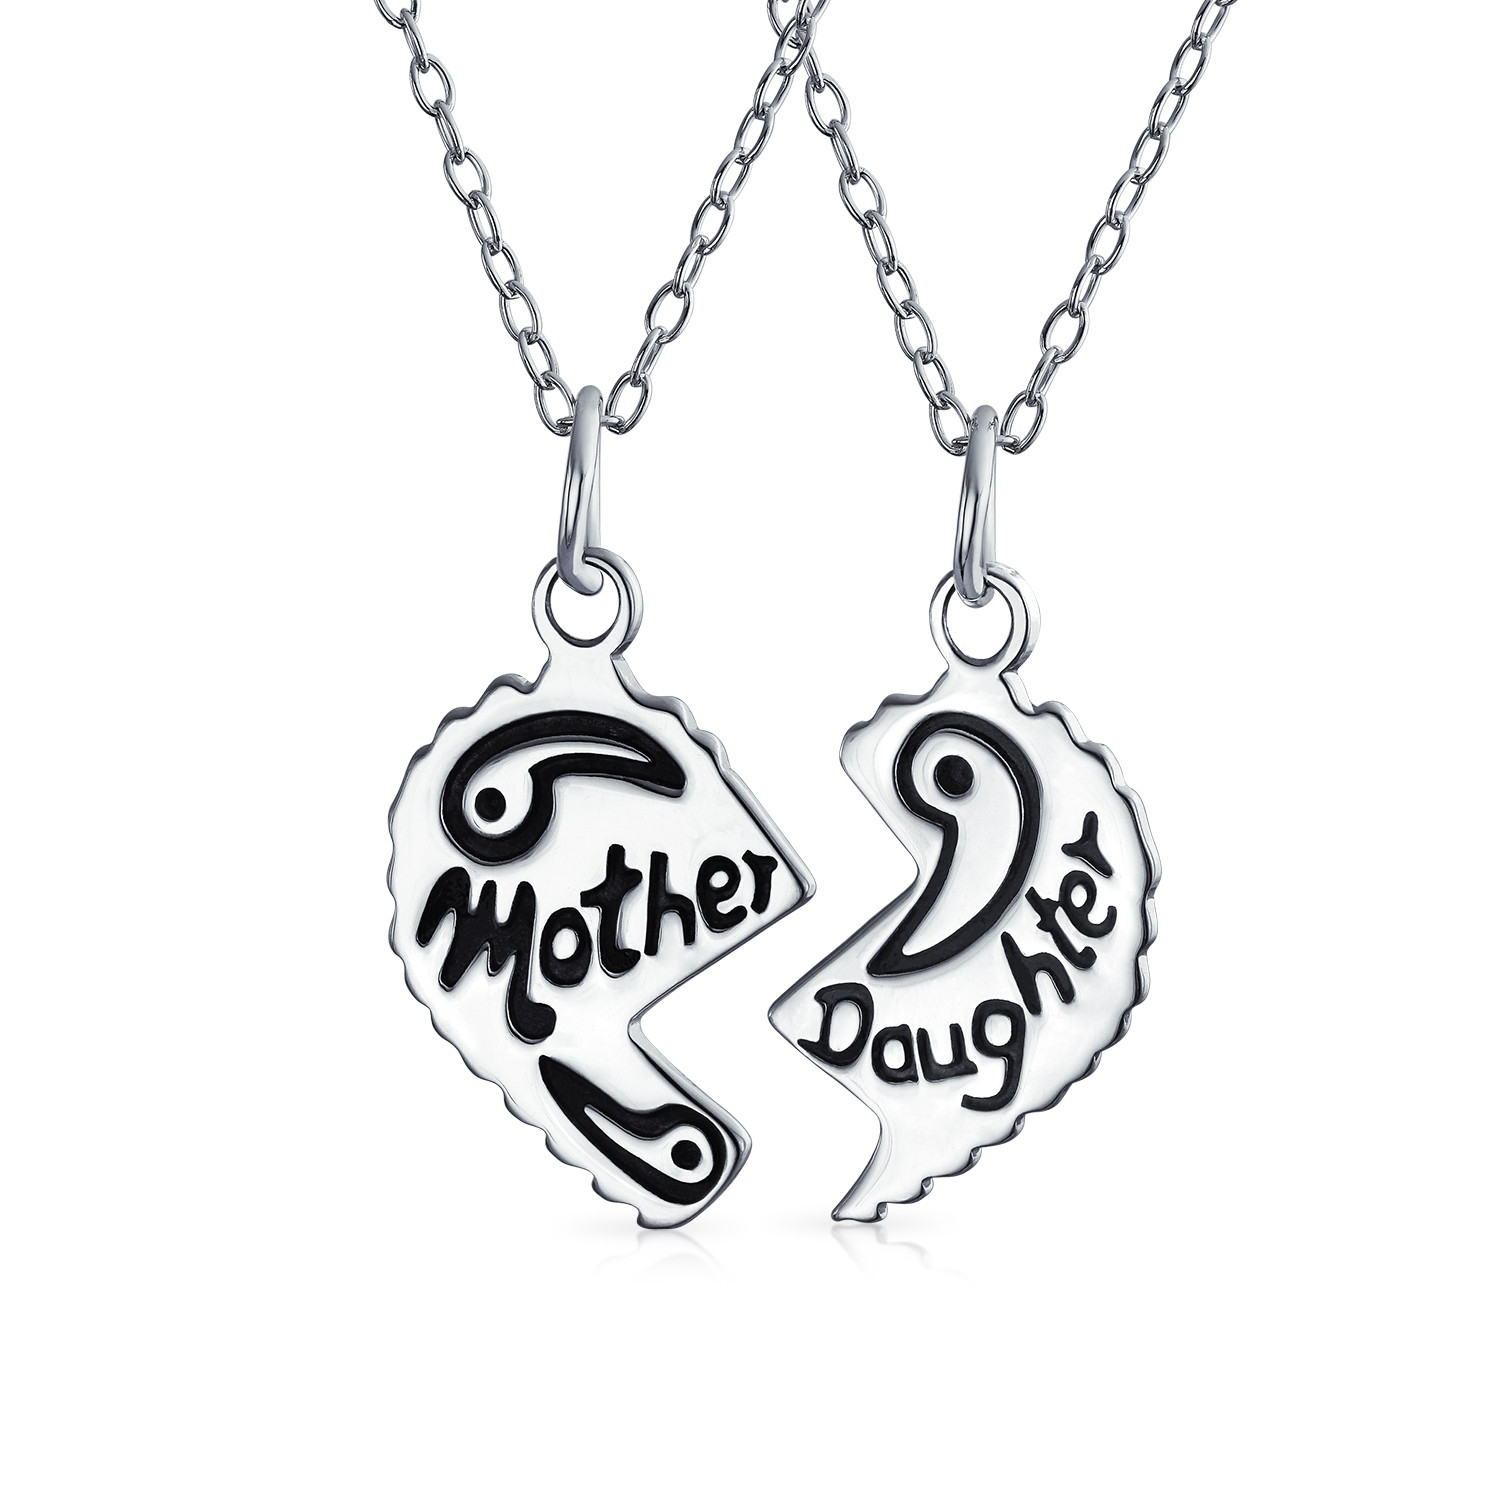 necklace shineon knot irish motherhood pendant products